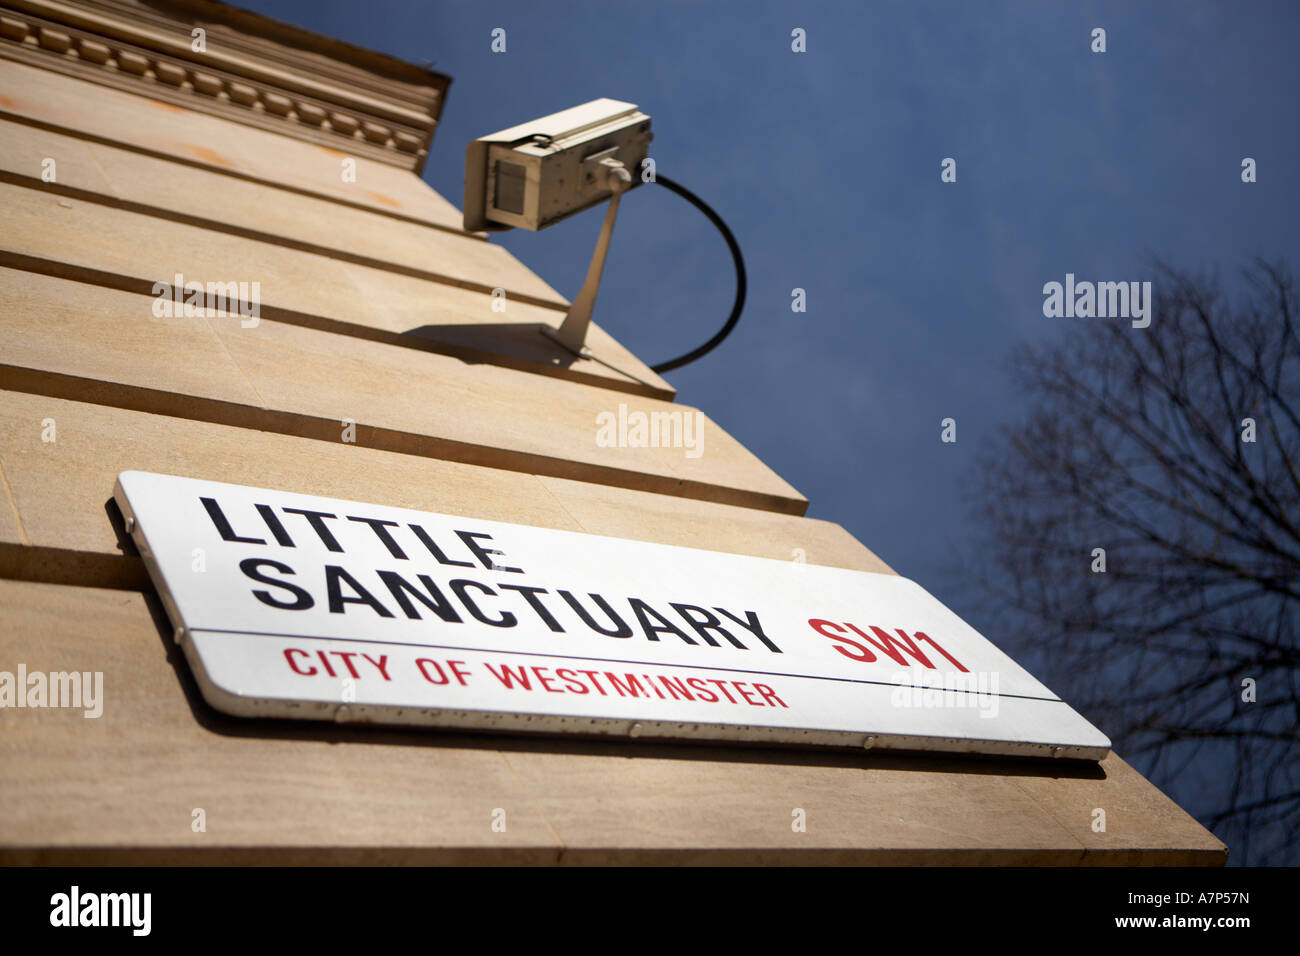 Little Sanctuary at Parliament Square SW1 and a CCTV security camera in London city England UK - Stock Image